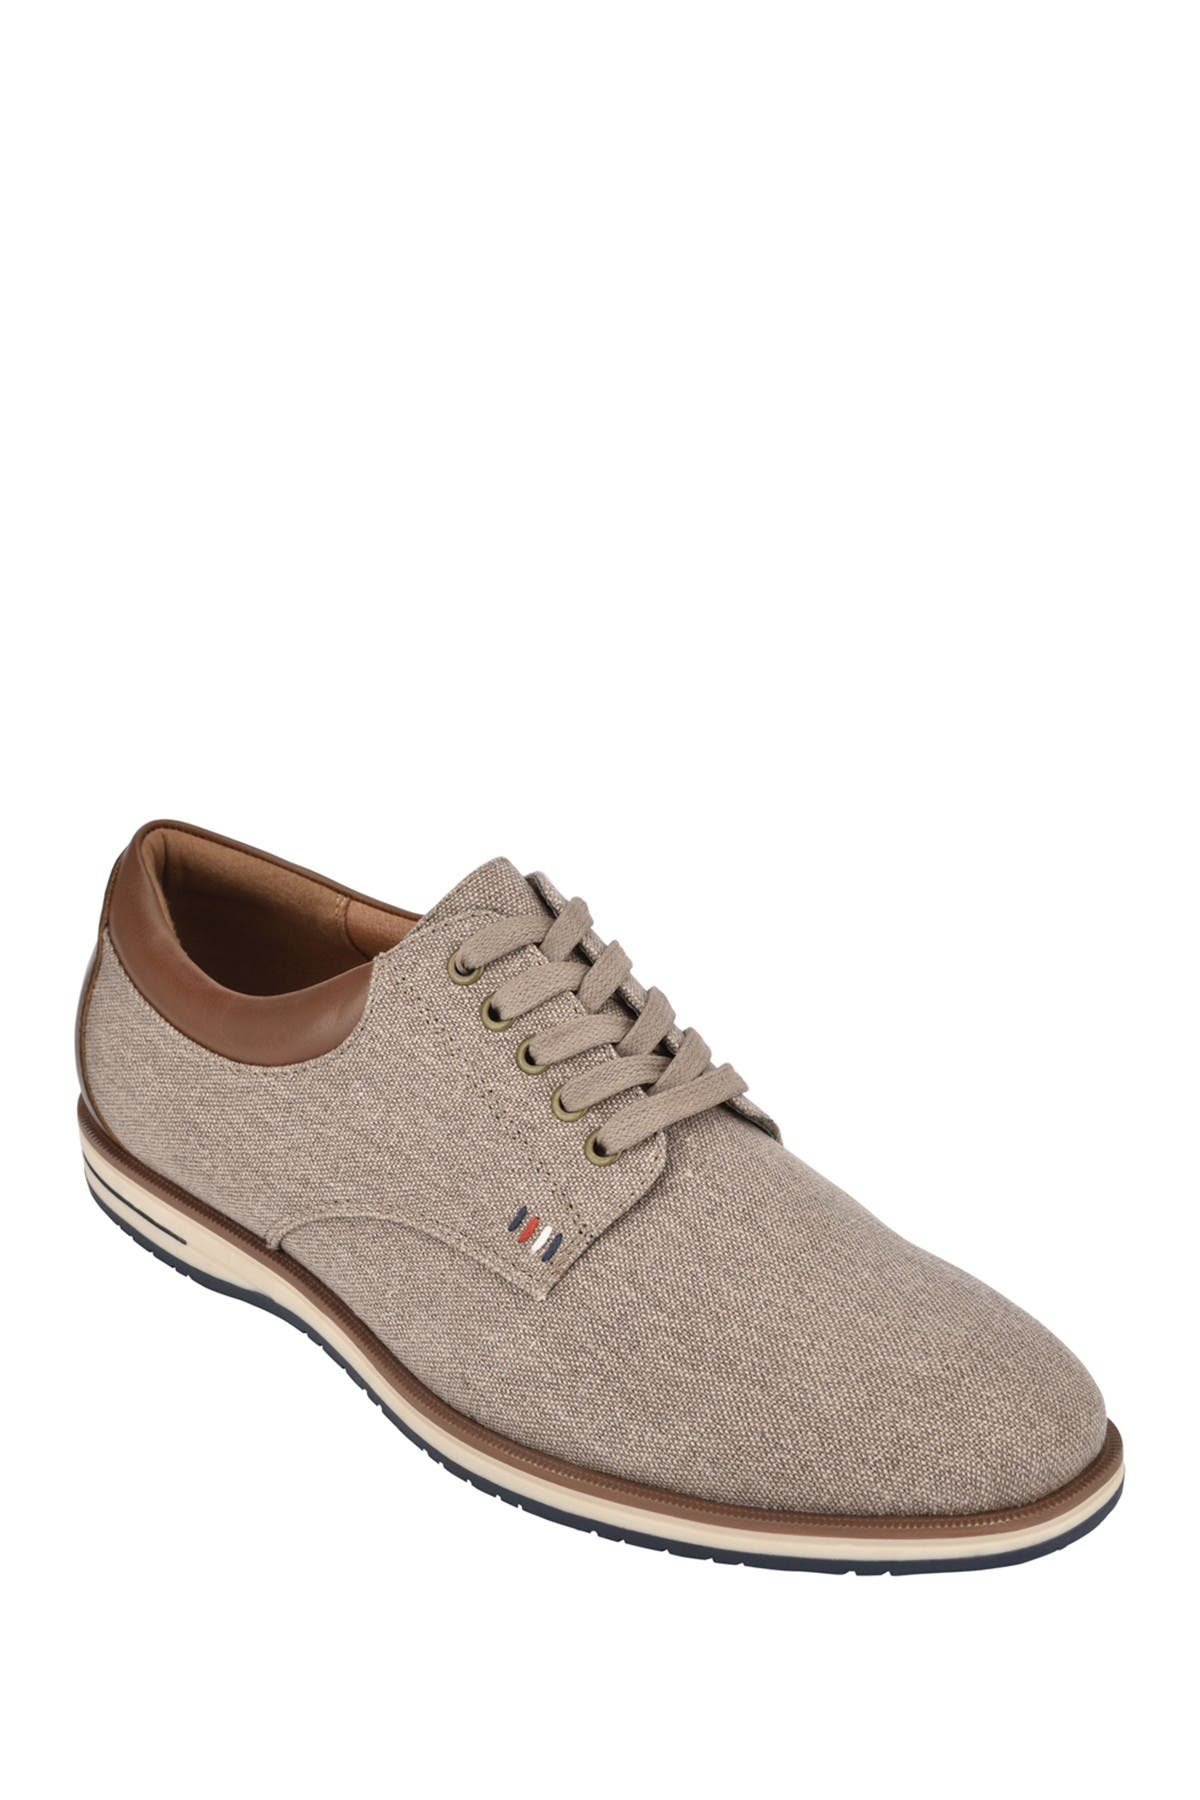 Image of Tommy Hilfiger Umbry Chambray Derby